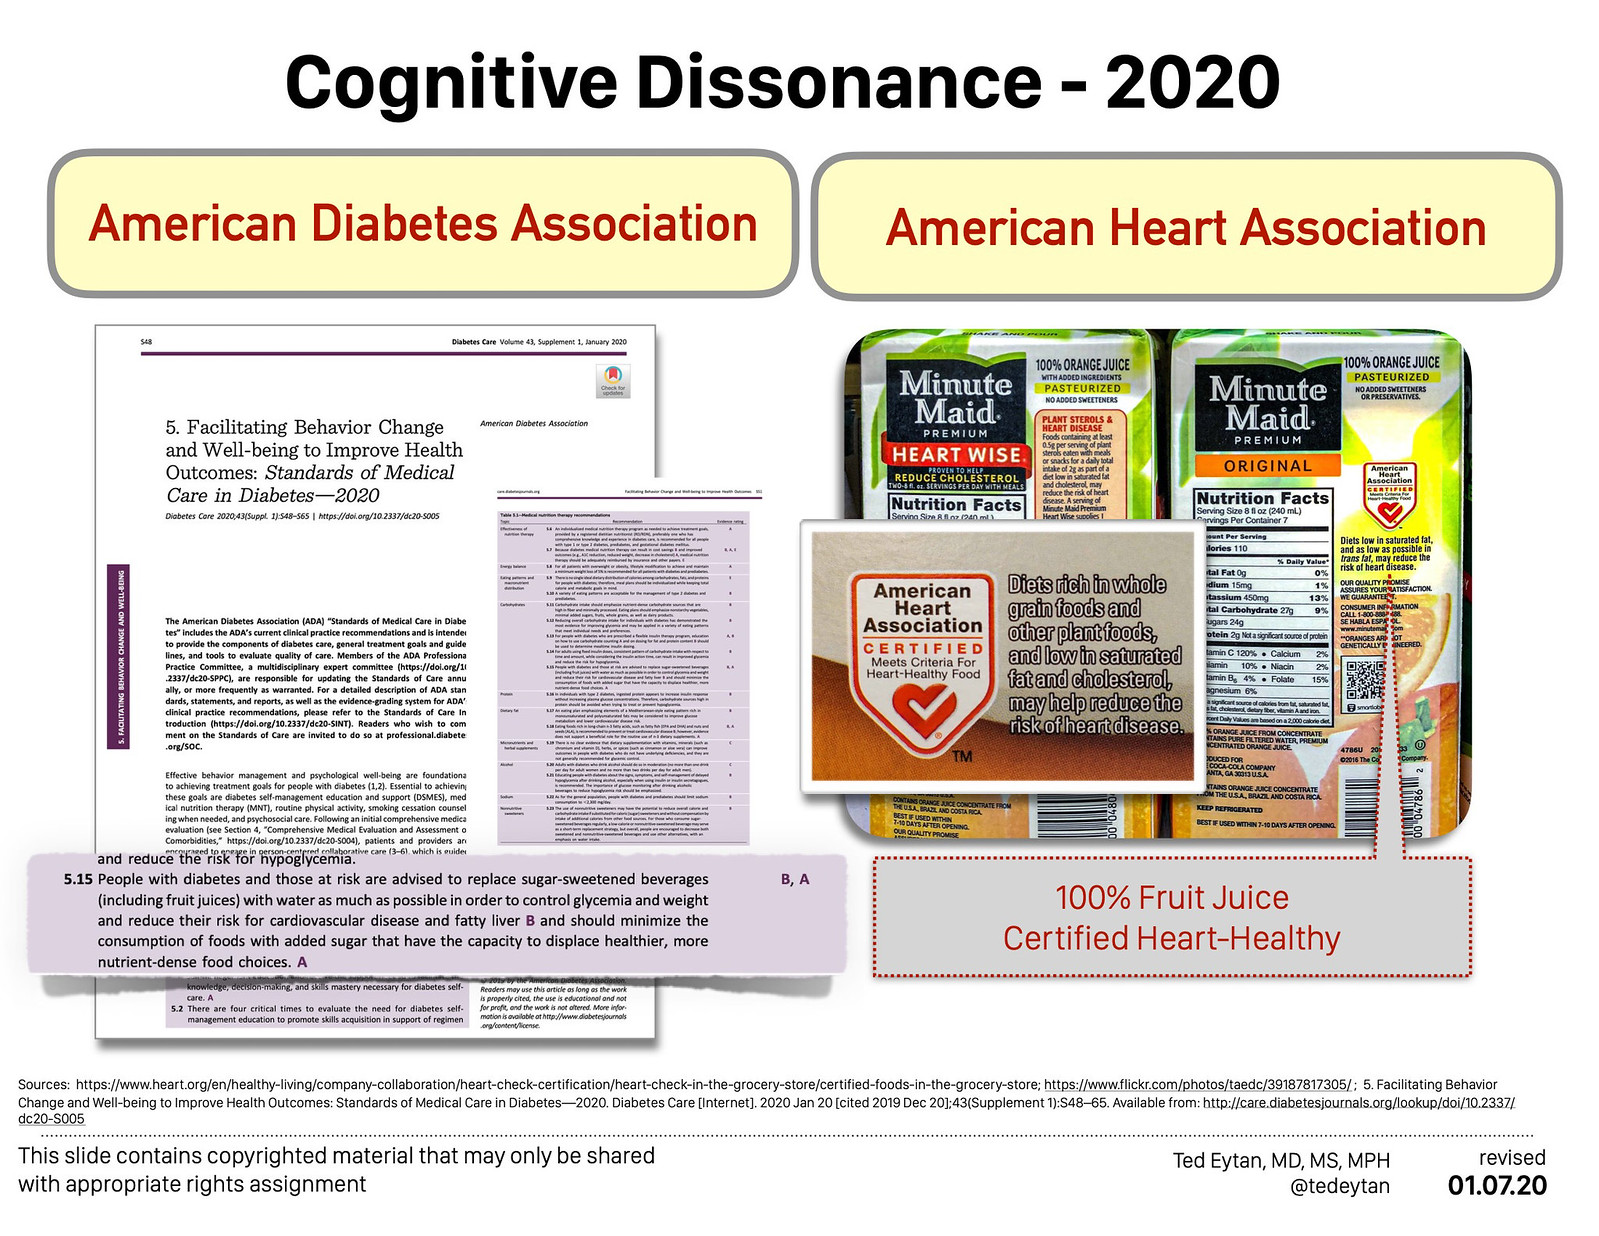 Just Read: Standards of Medical Care in Diabetes – 2020: New Year, A Little Less (but still some) Cognitive Dissonance